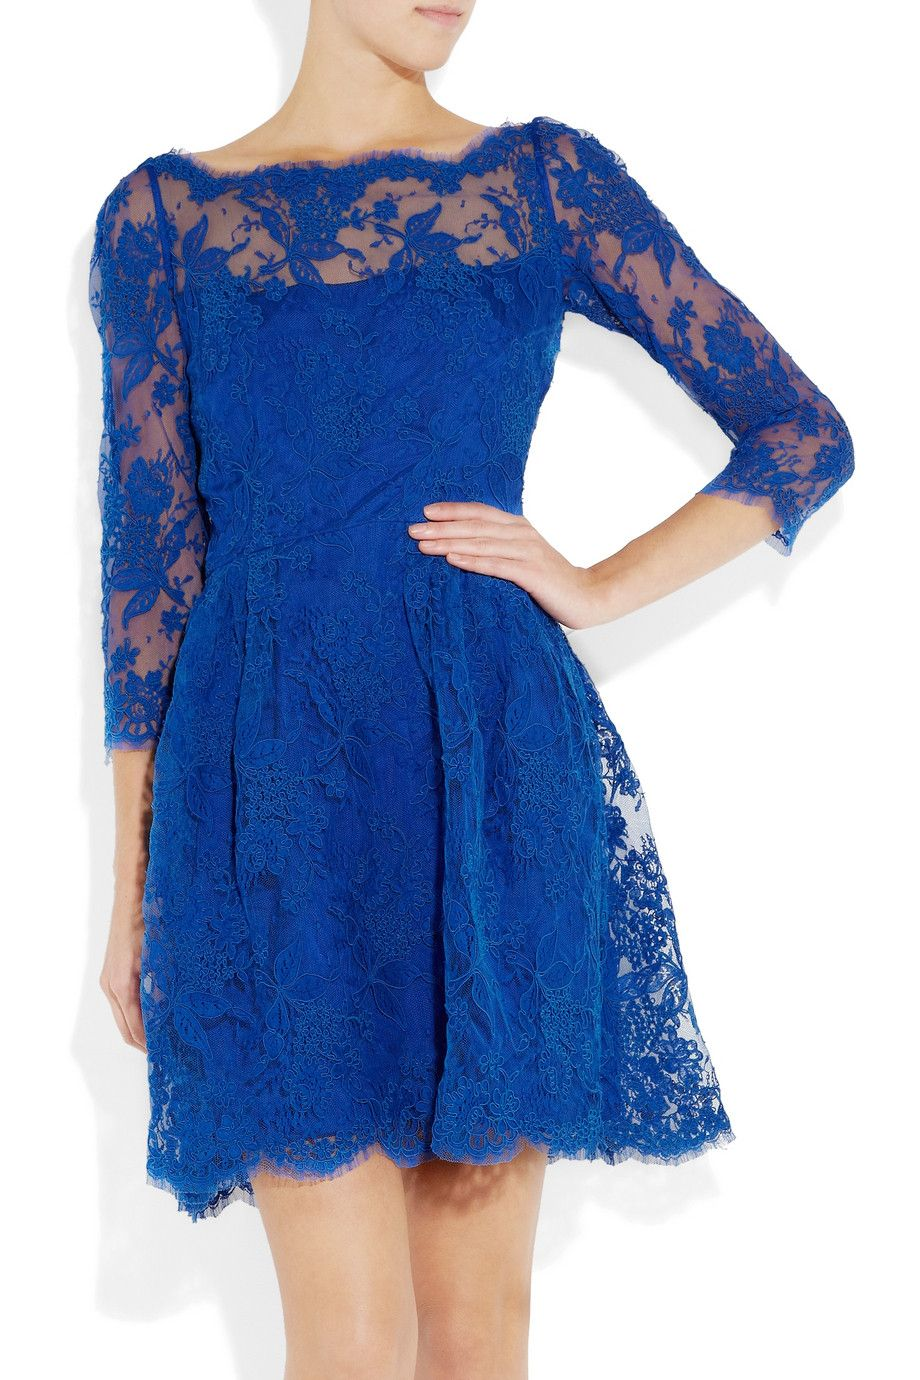 Royal blue lace dress styles  i love Issa lace dress in cobalt blue  the next step  Pinterest